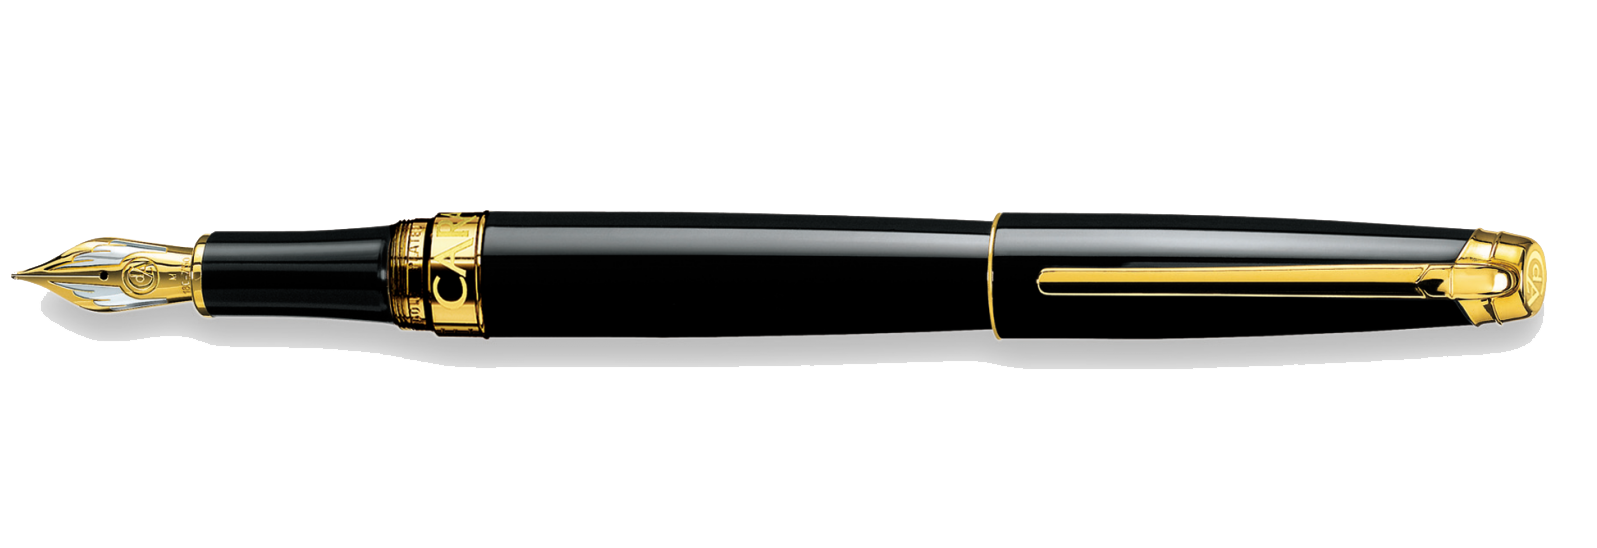 Fountain Pen Png image #43192 - Pen PNG